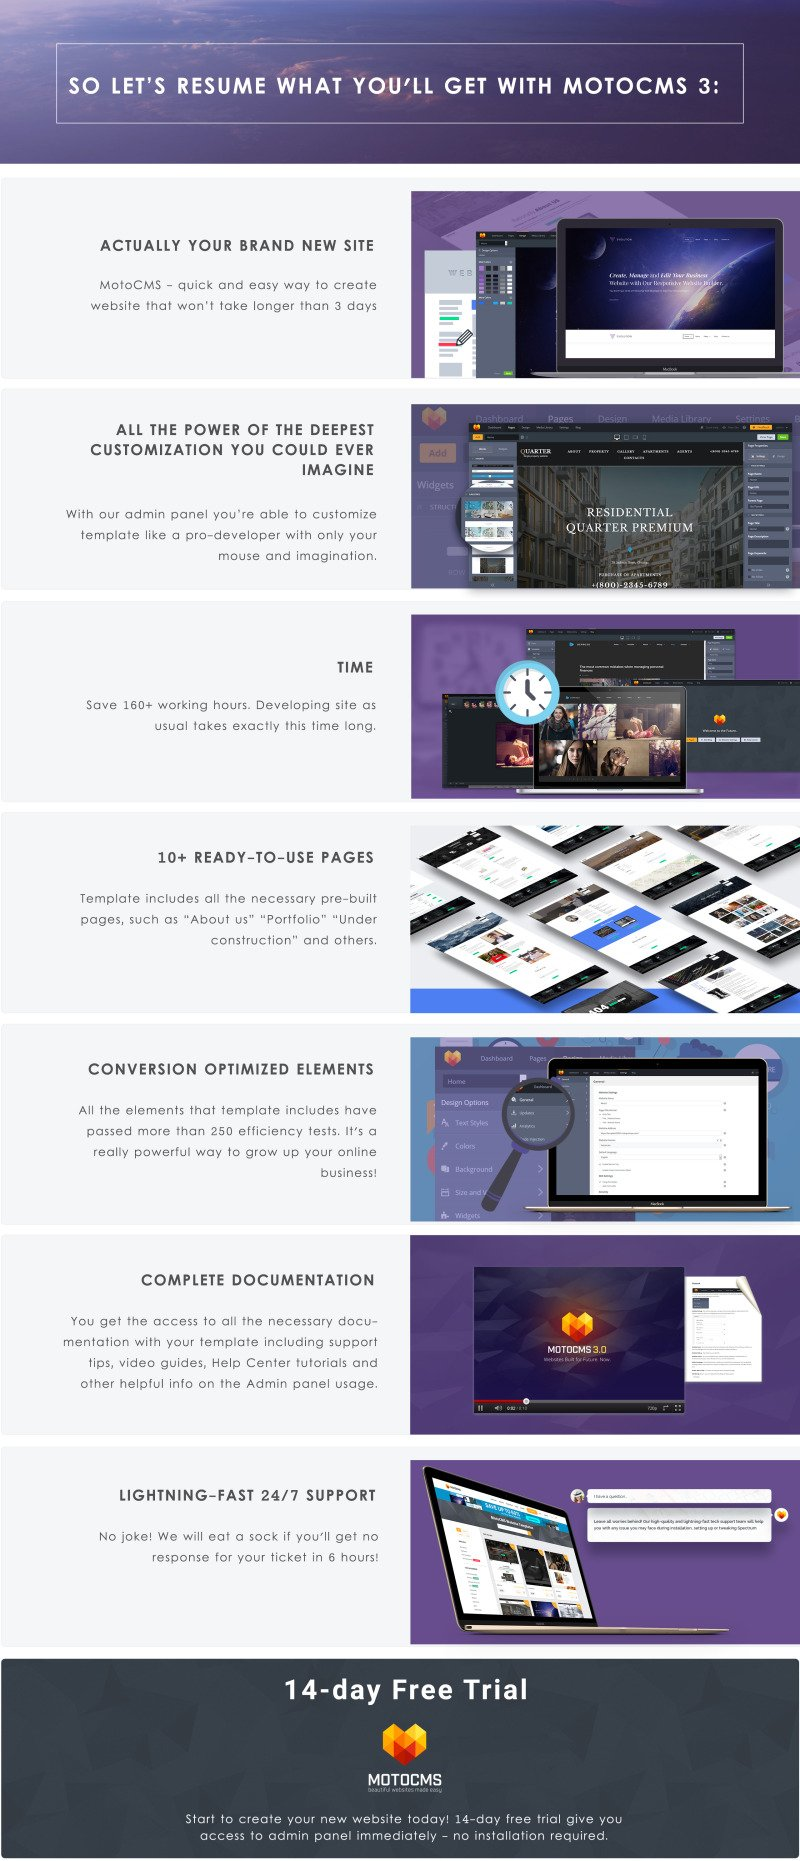 Magnifio - Magician Artist & Performer Moto CMS 3 Template - Features Image 6